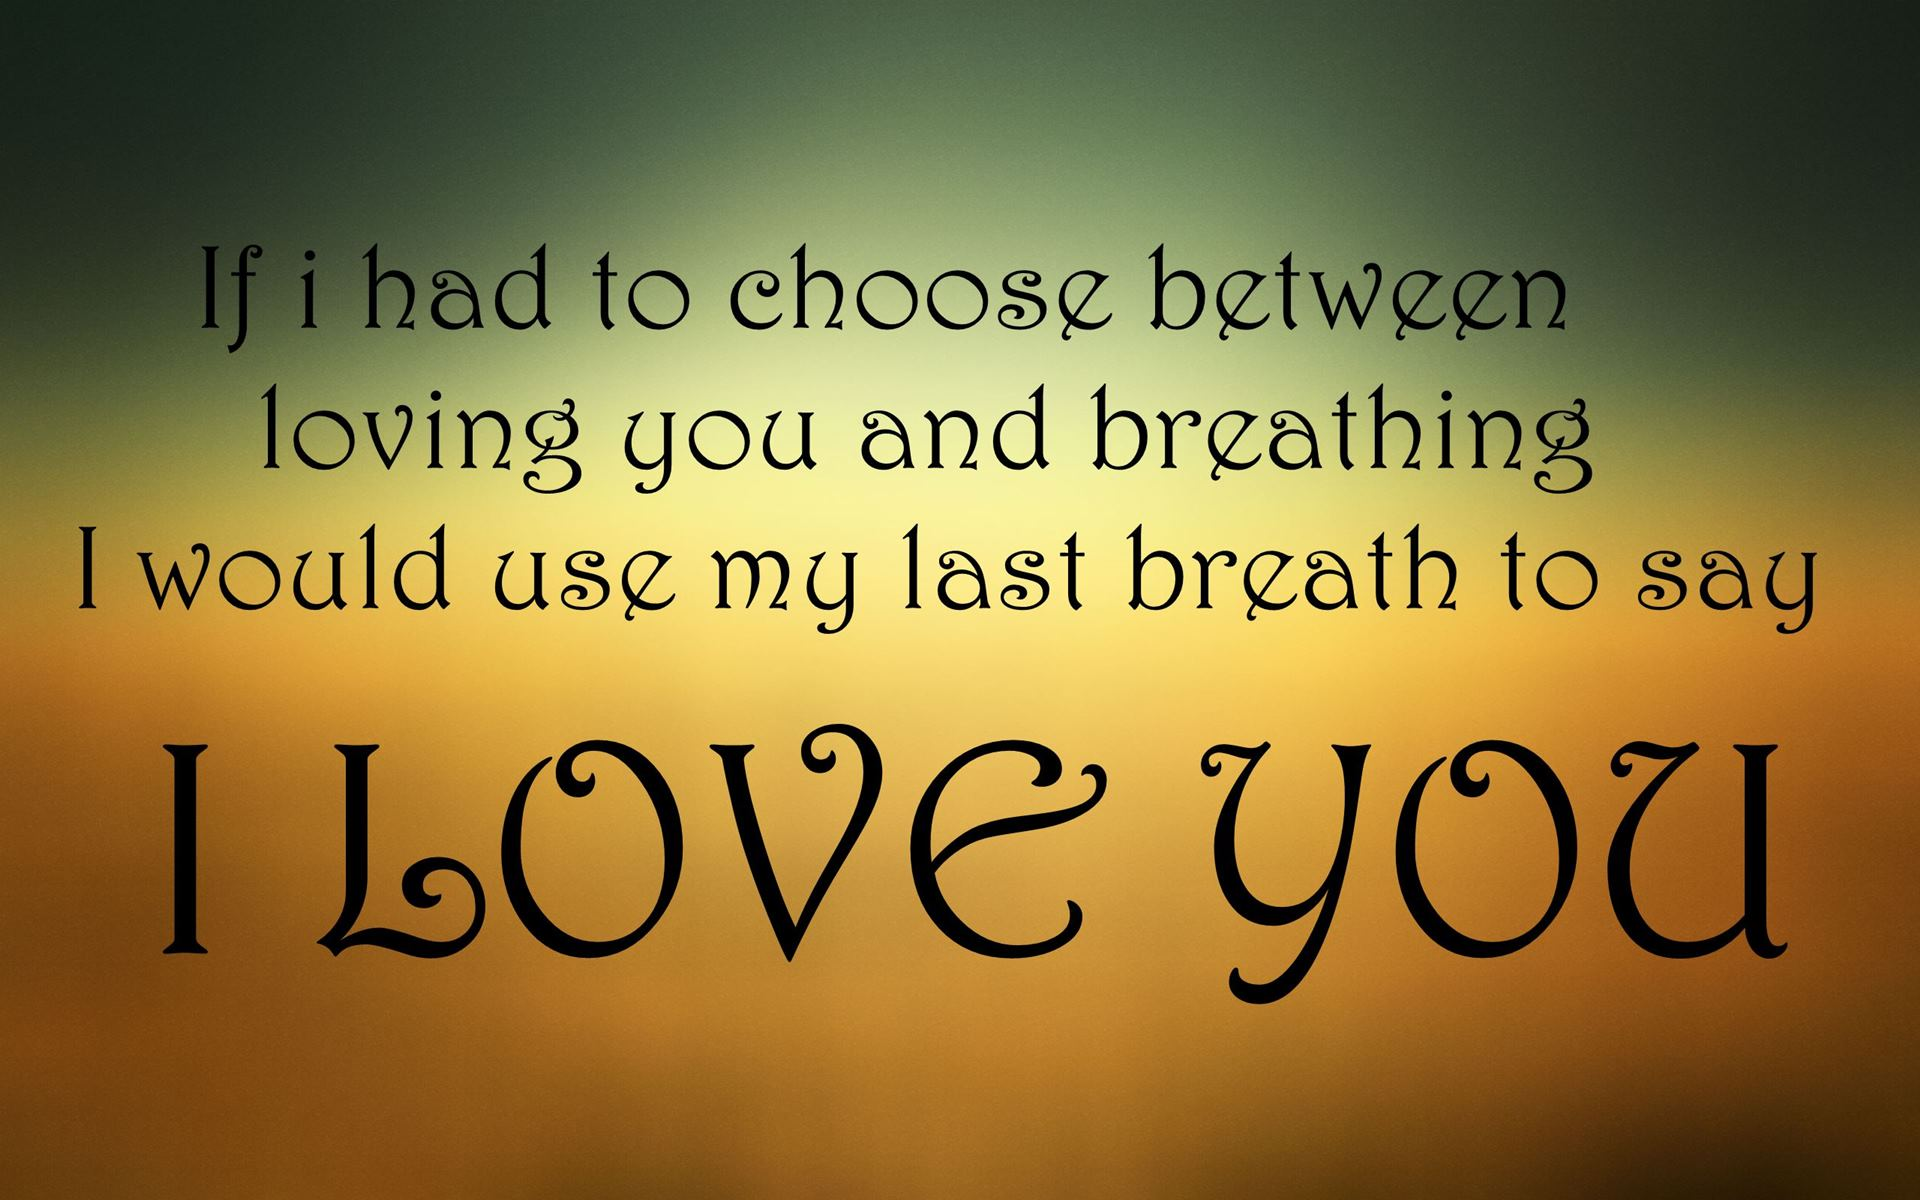 Love Quotes Wallpaper For Desktop : Quotes About Love Wallpapers, Pictures, Images